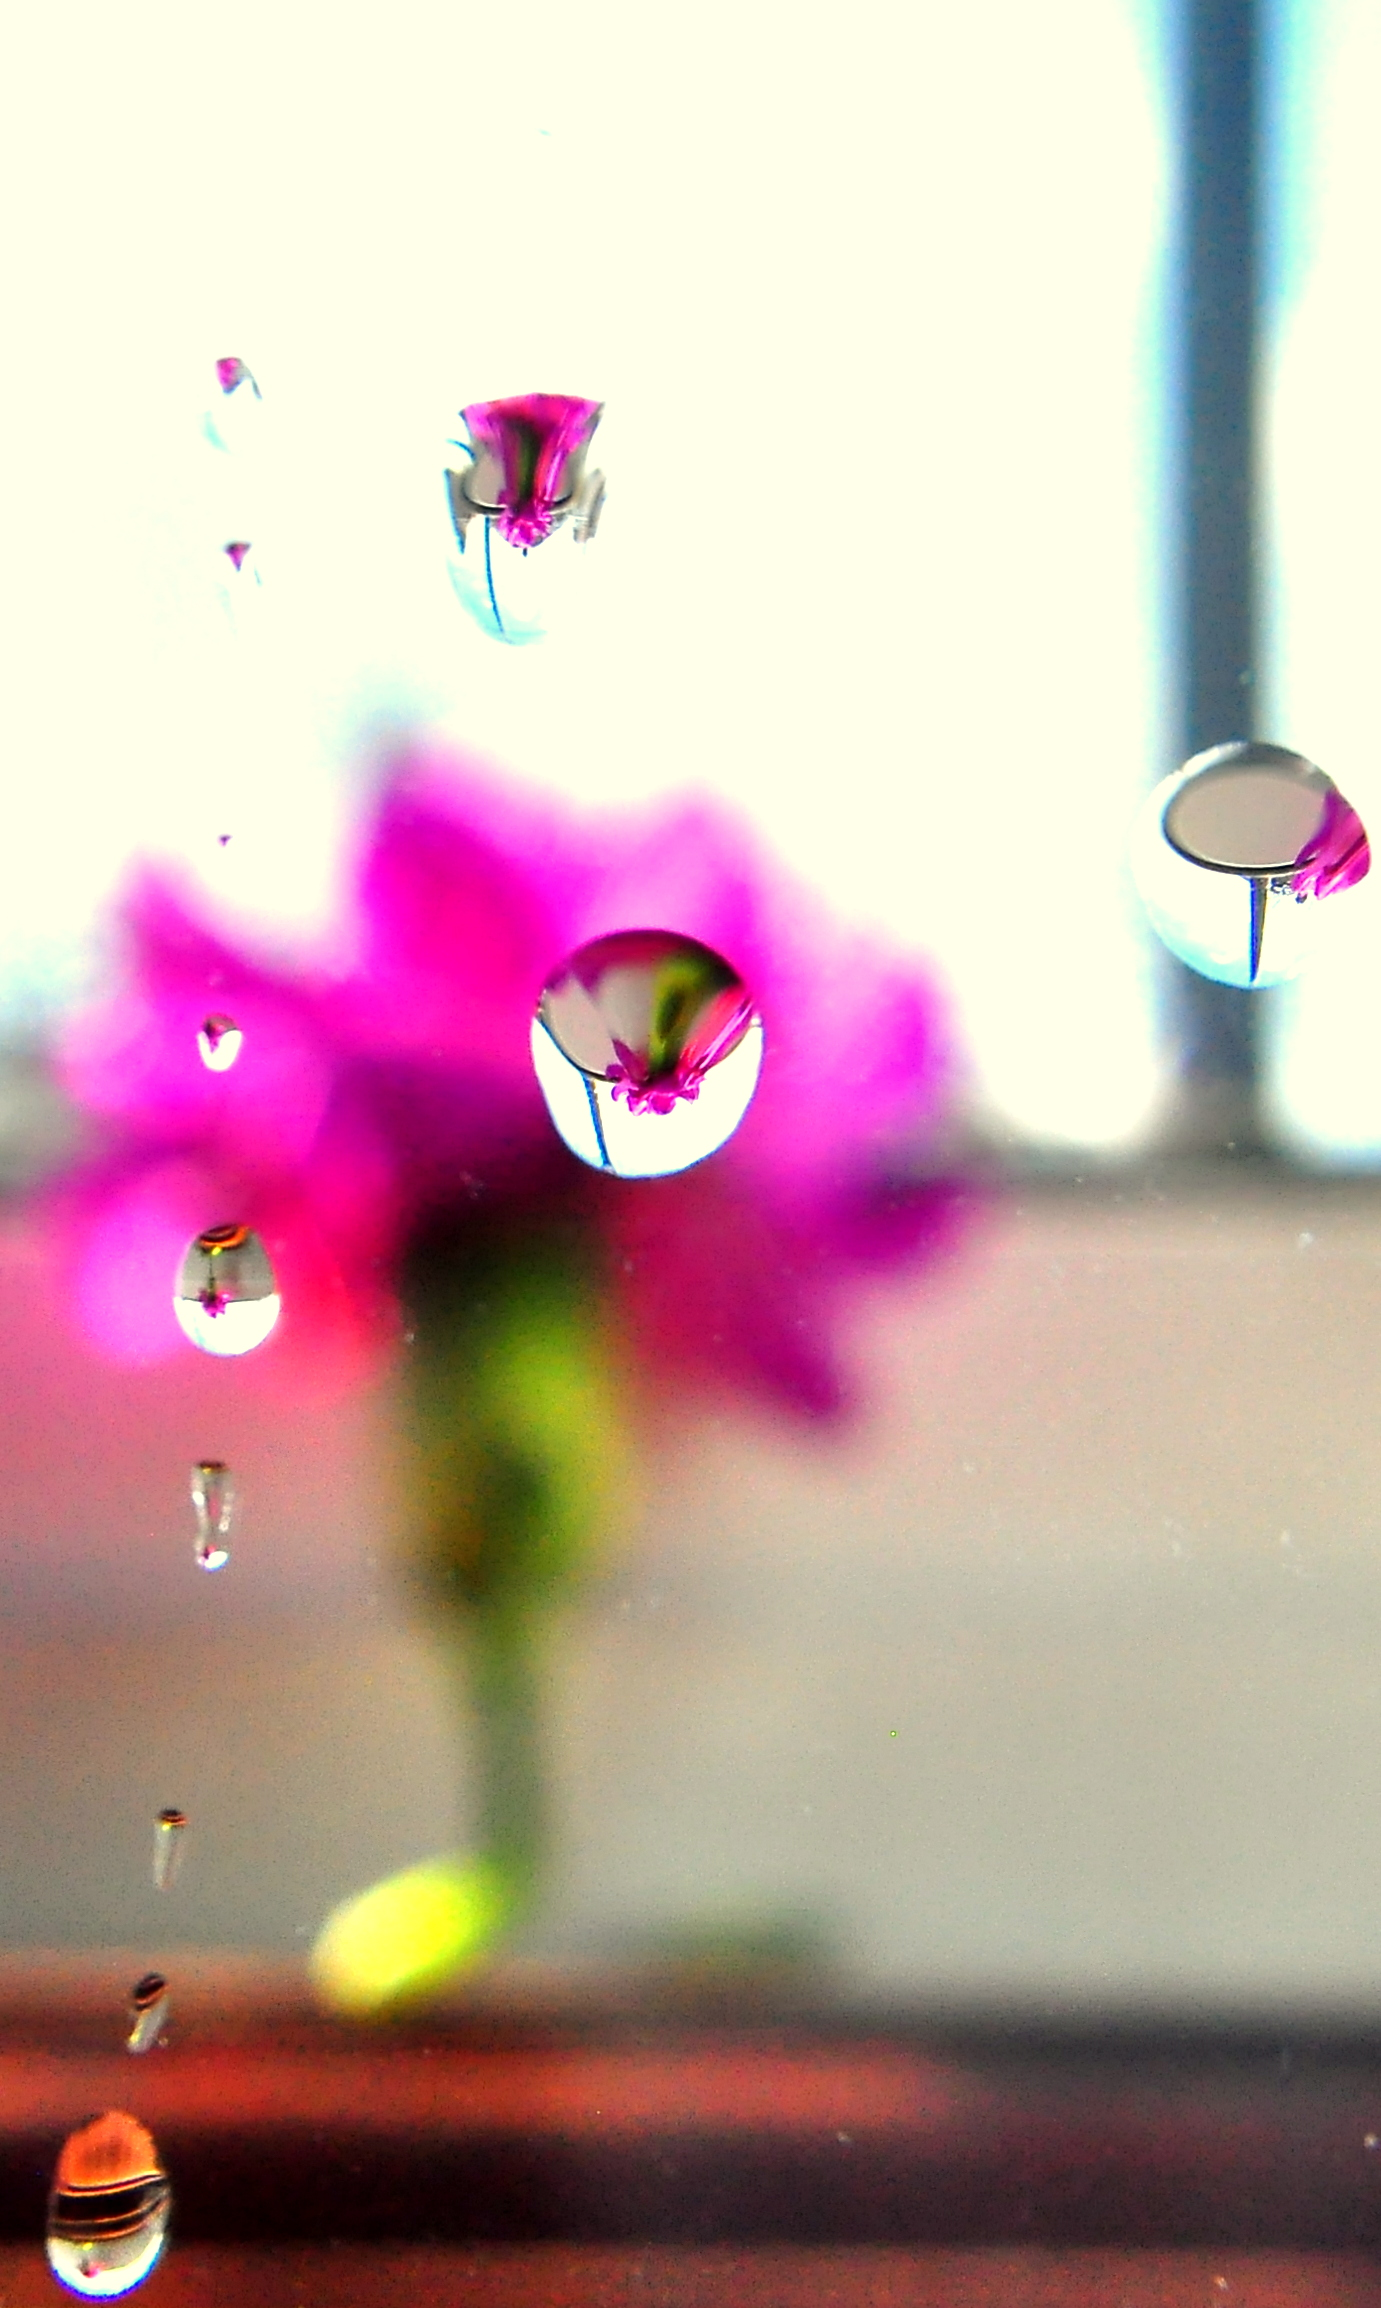 Droplet Reflection